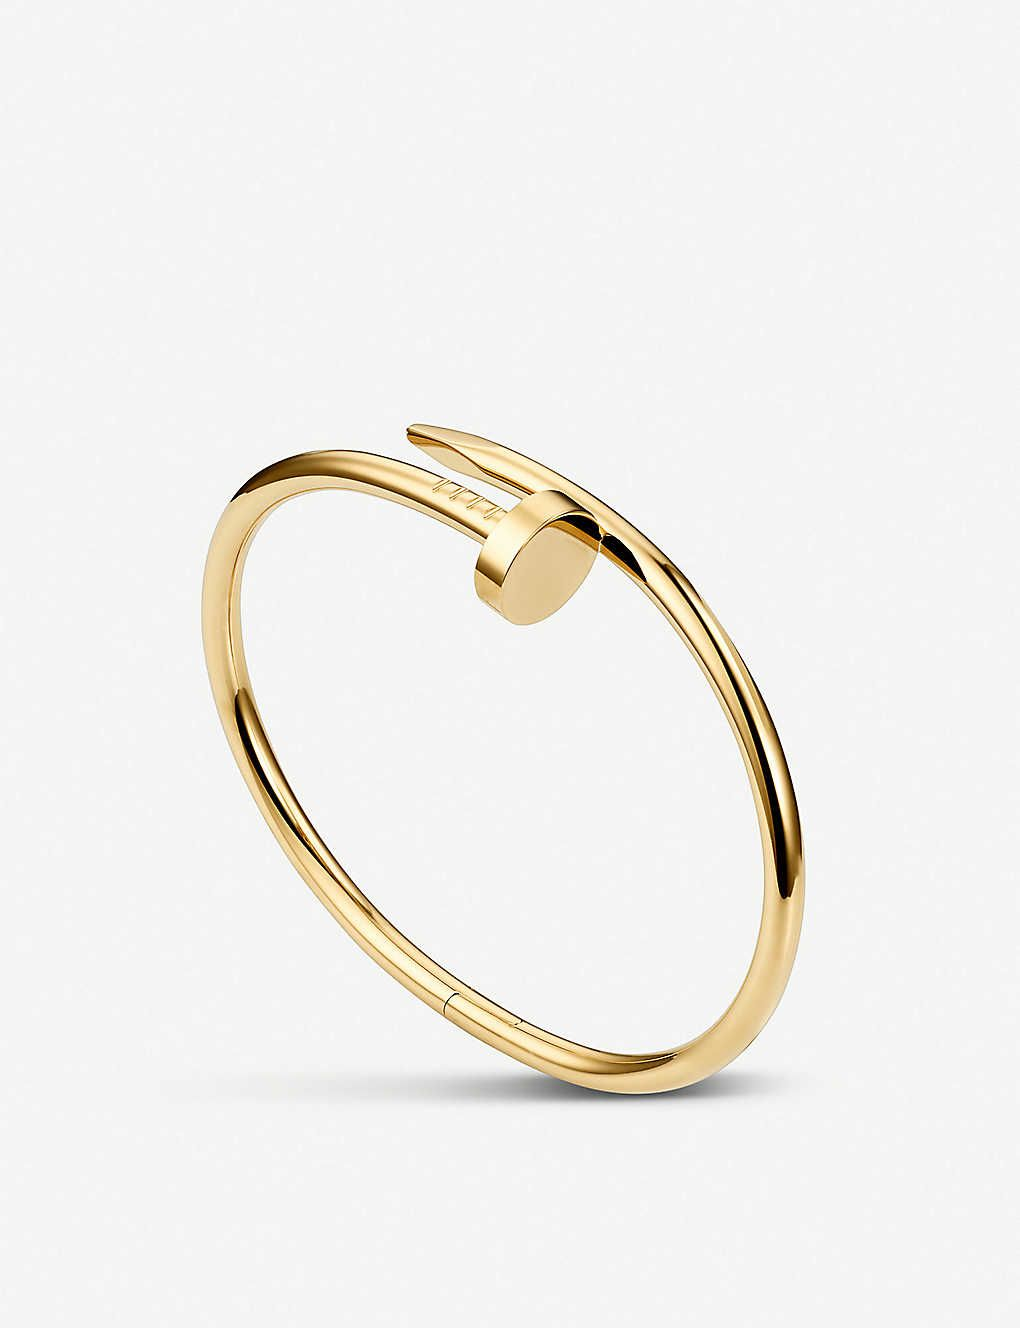 8288ae9901 CARTIER Juste un Clou 18ct yellow-gold bracelet in 2019 | ring ...